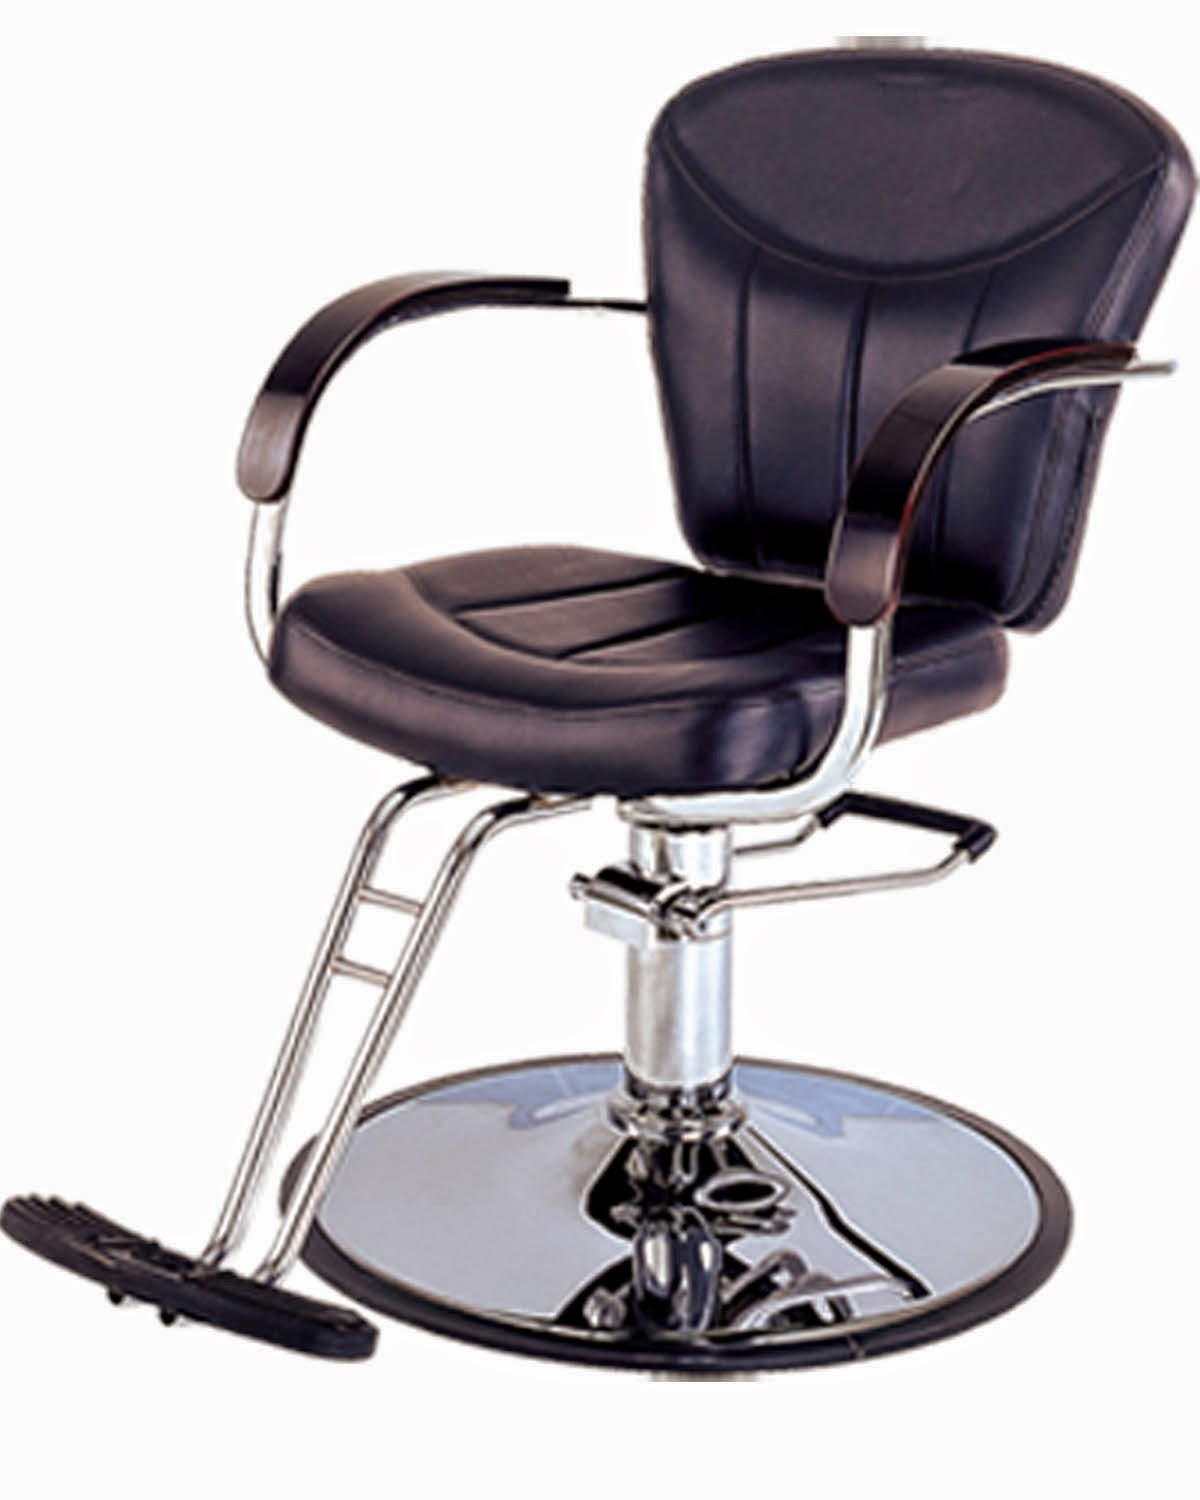 http://www.thelashop.com/salon-chair